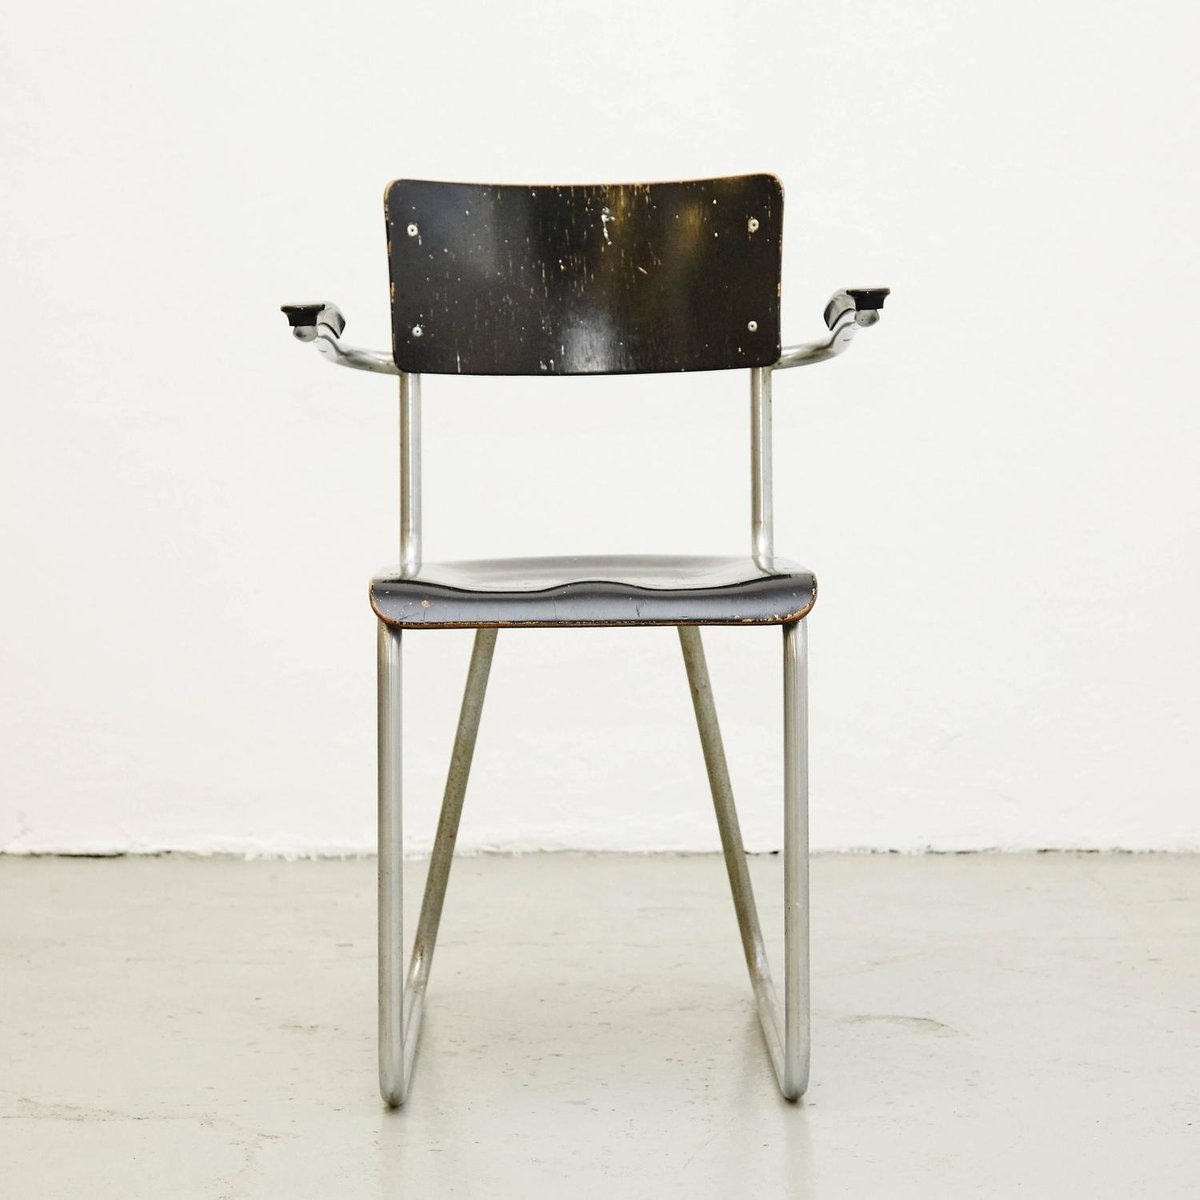 Dutch bauhaus chair 1930s for sale at pamono for Dutch design chair uk